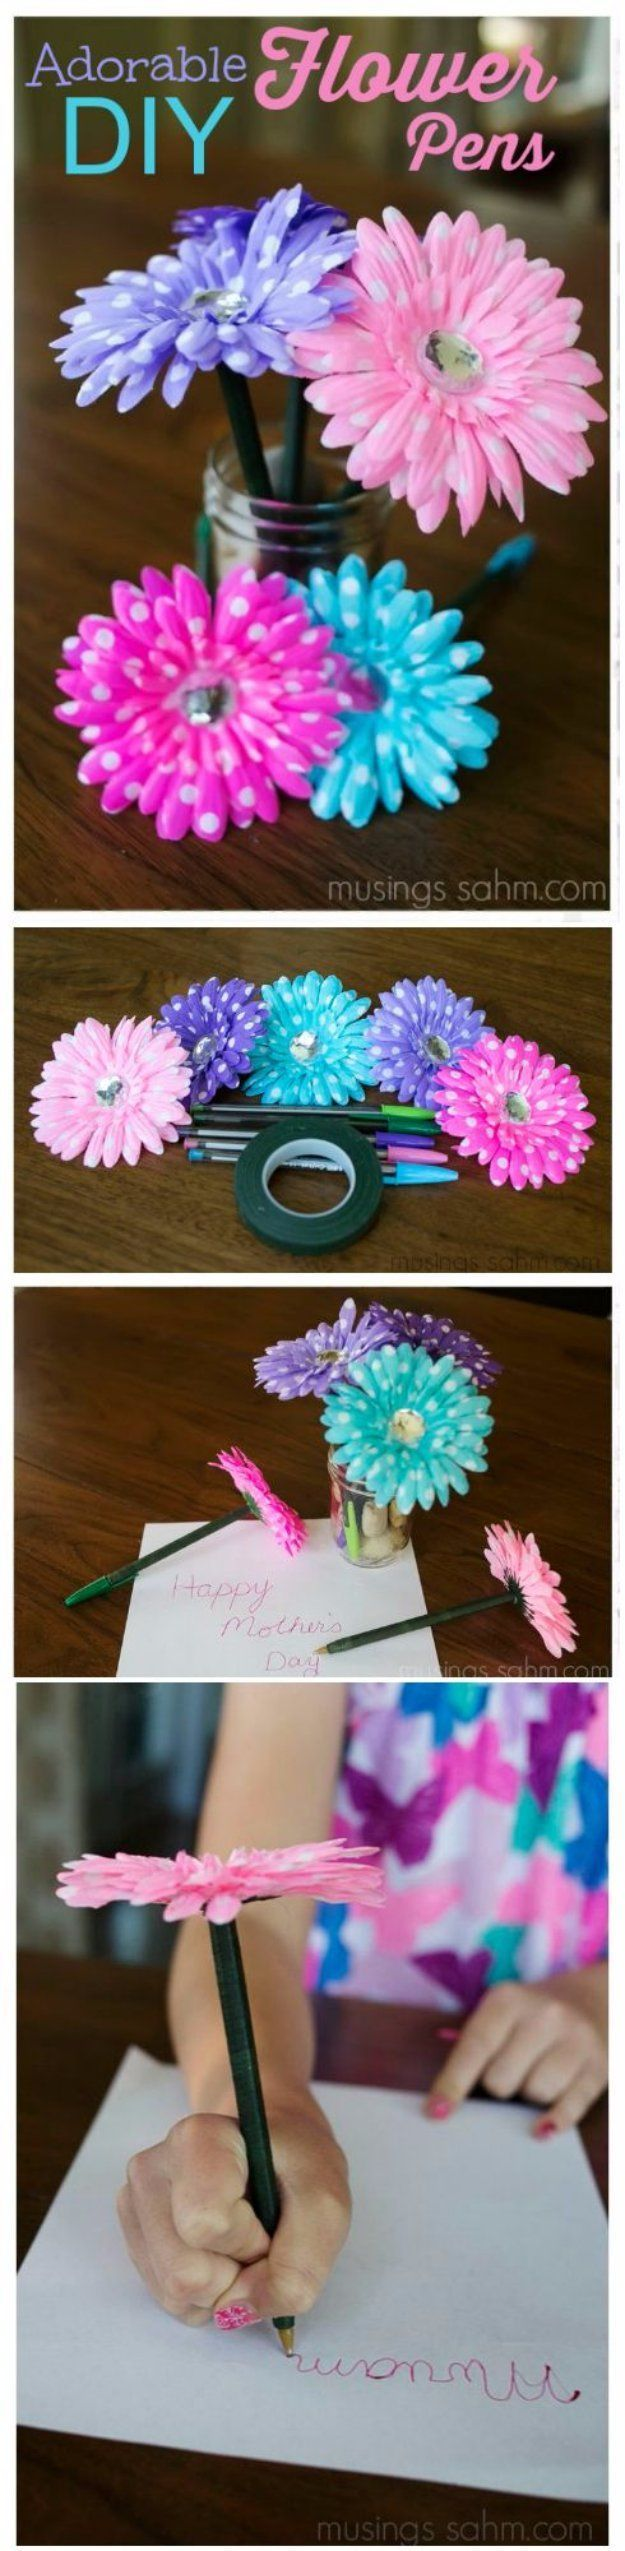 Best 20 homemade crafts ideas on pinterest homemade for How to sell handmade crafts on facebook